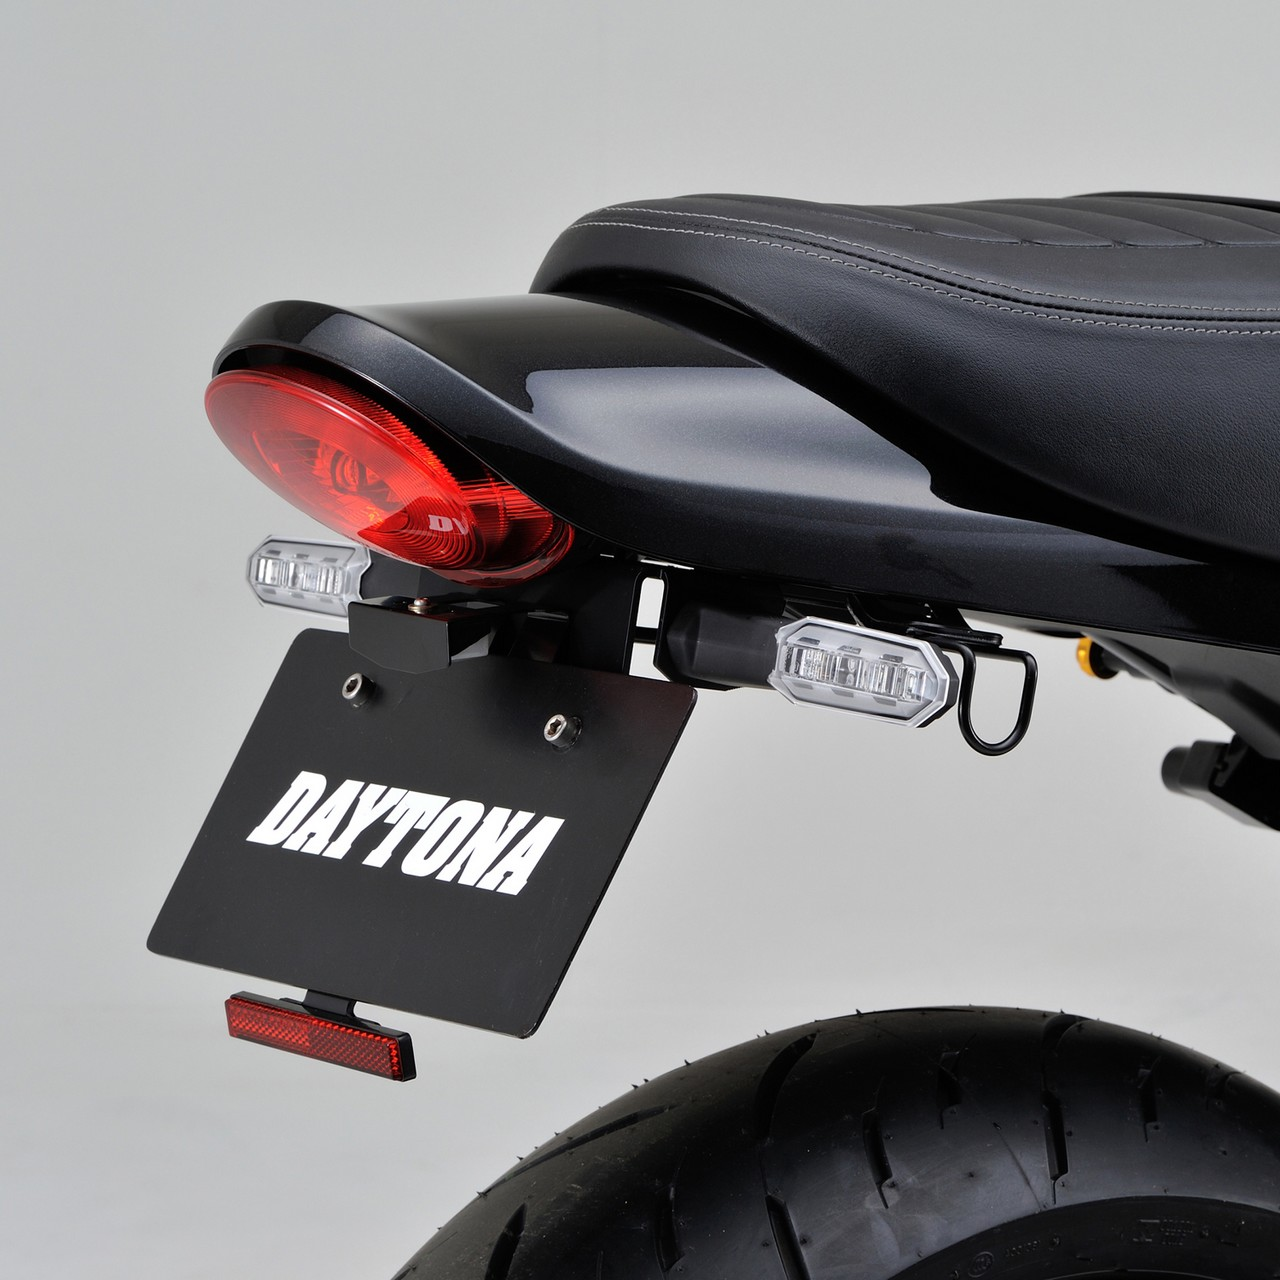 【DAYTONA】Kit Pemberantasan Fender - Webike Indonesia